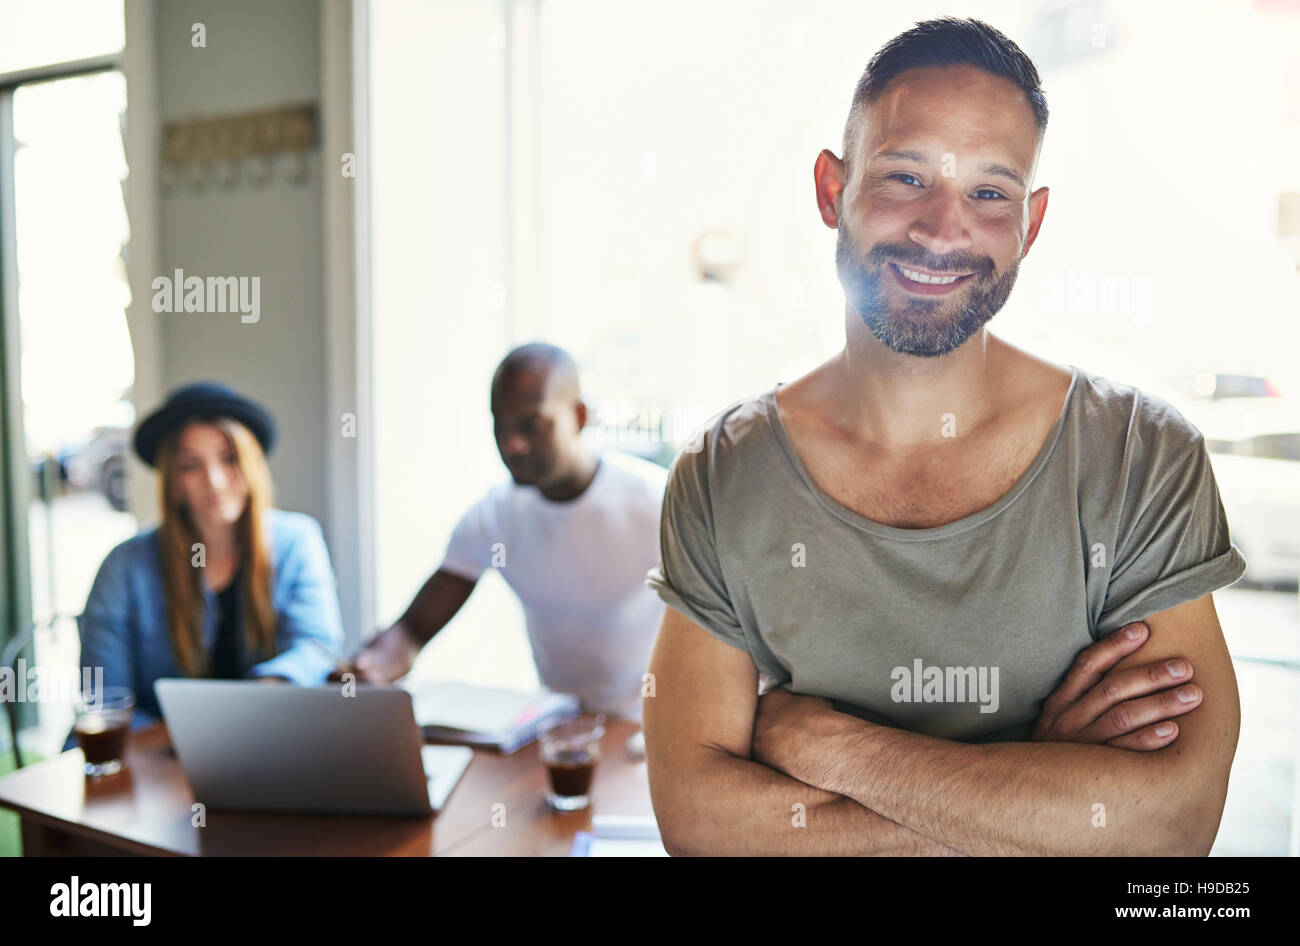 Casual looking male posing with hands crossed on blurred background of co-workers sitting at table in office. - Stock Image